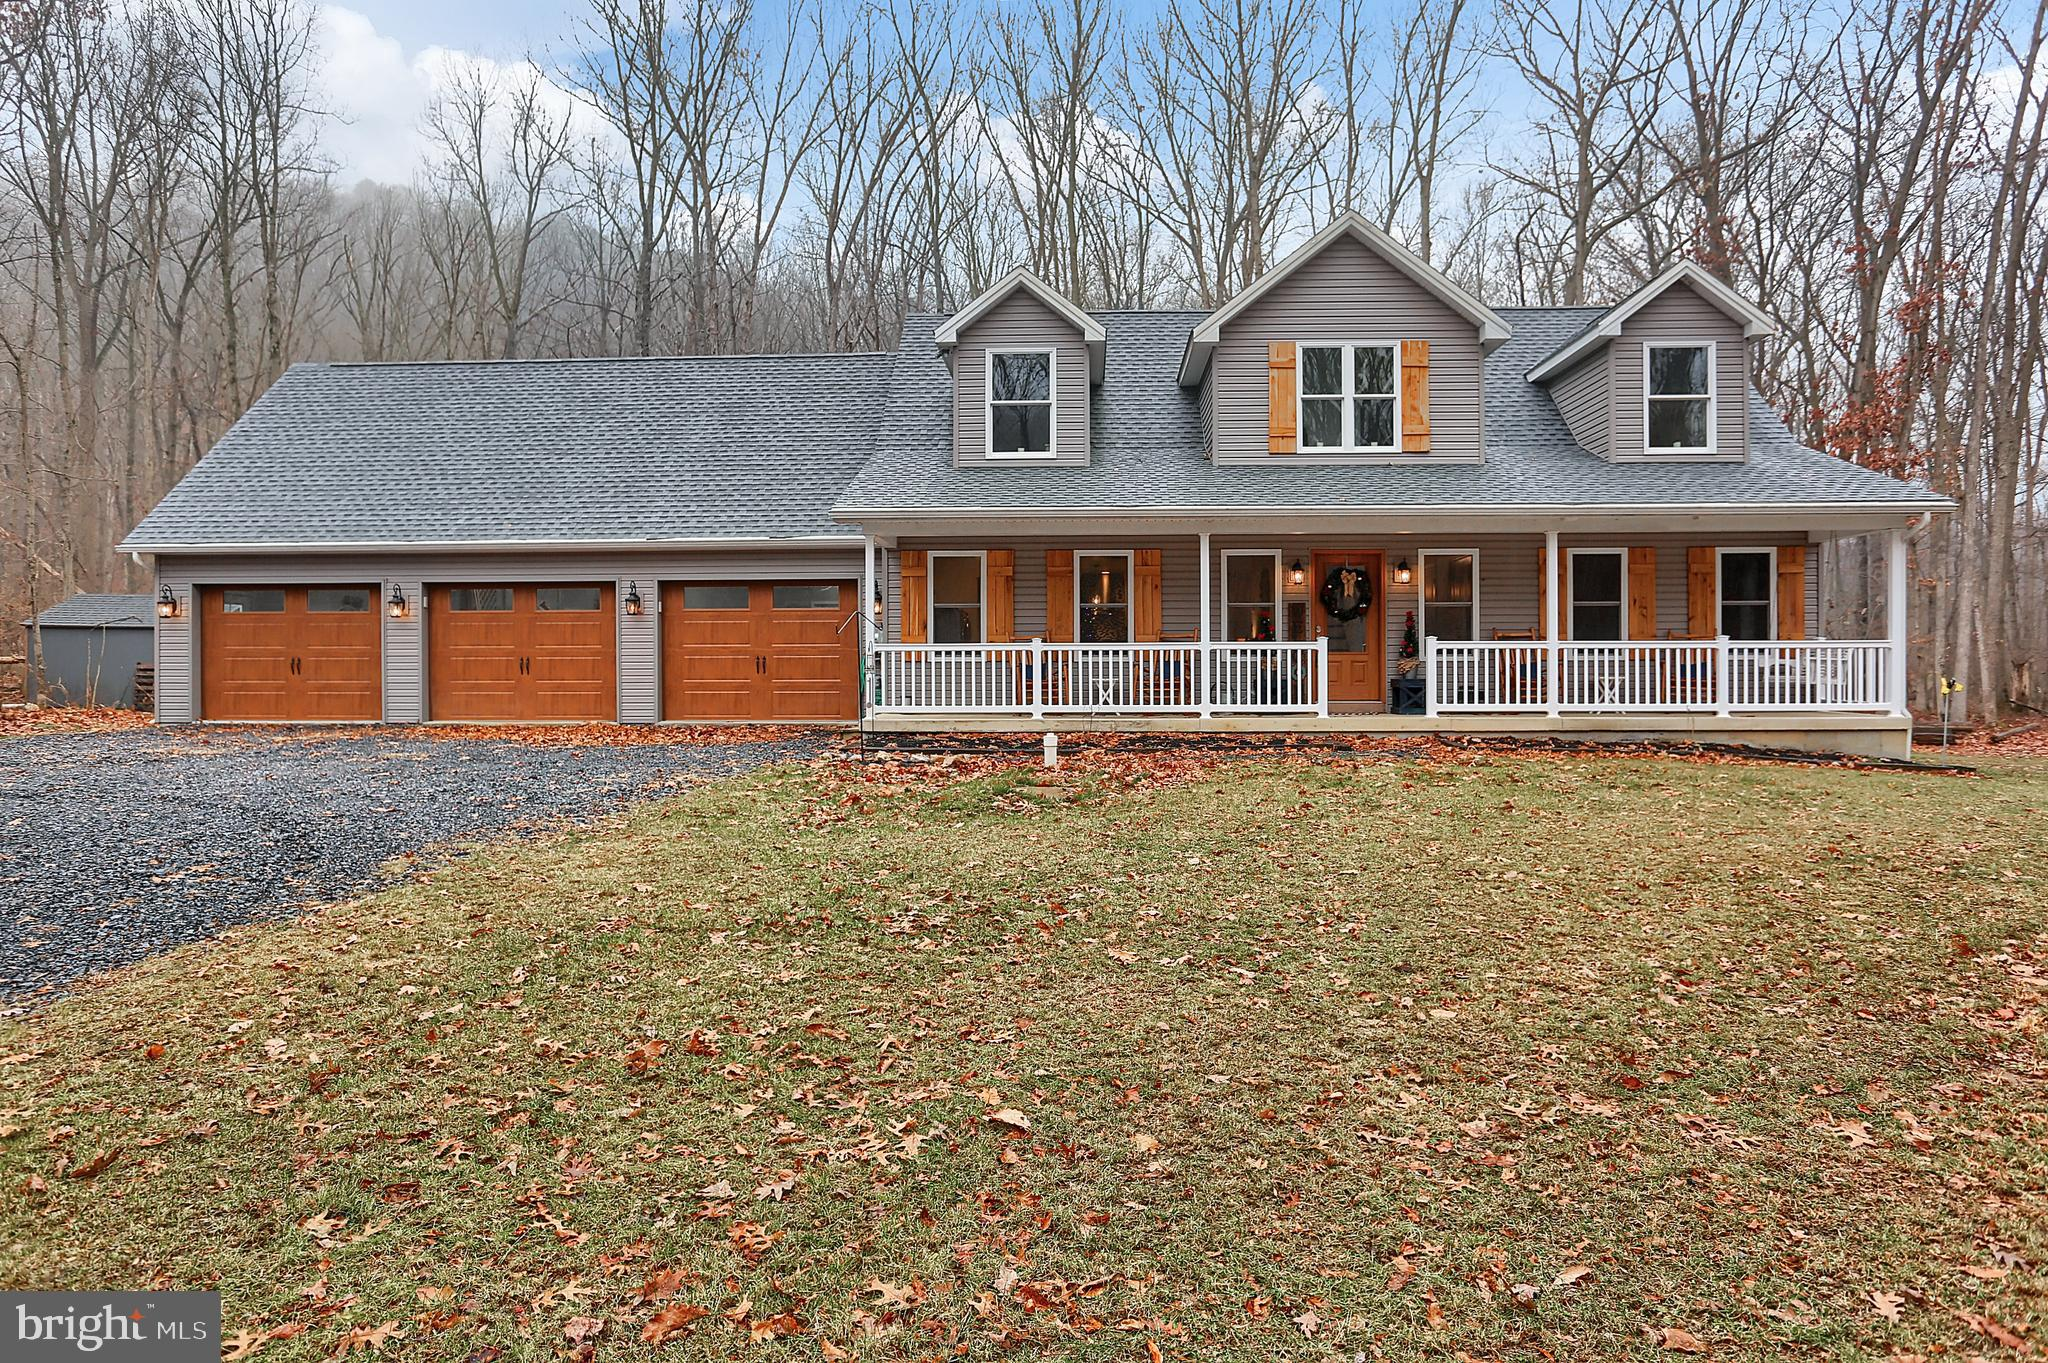 152 BEETEM HOLLOW ROAD, NEWVILLE, PA 17241